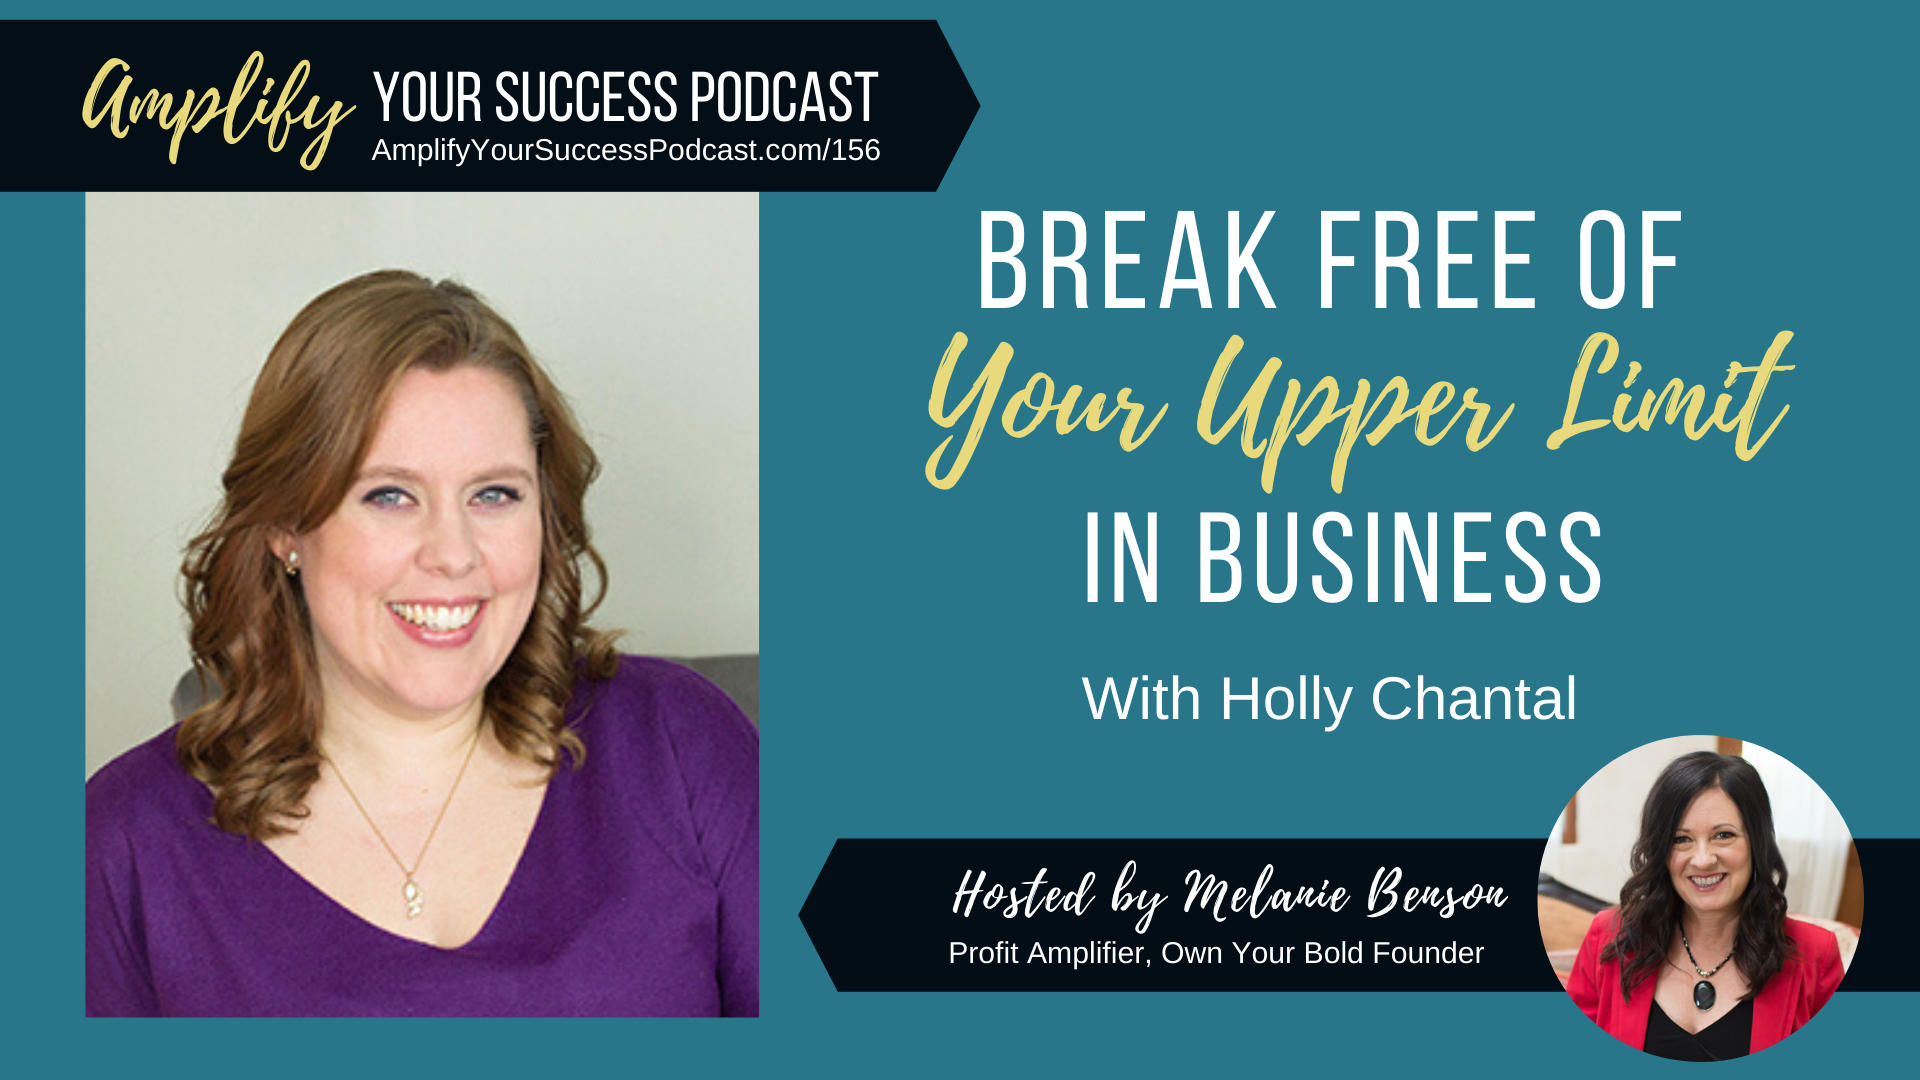 Break Free of Your Upper Limit in Business and Exceed 6 Figures with Holly Chantal